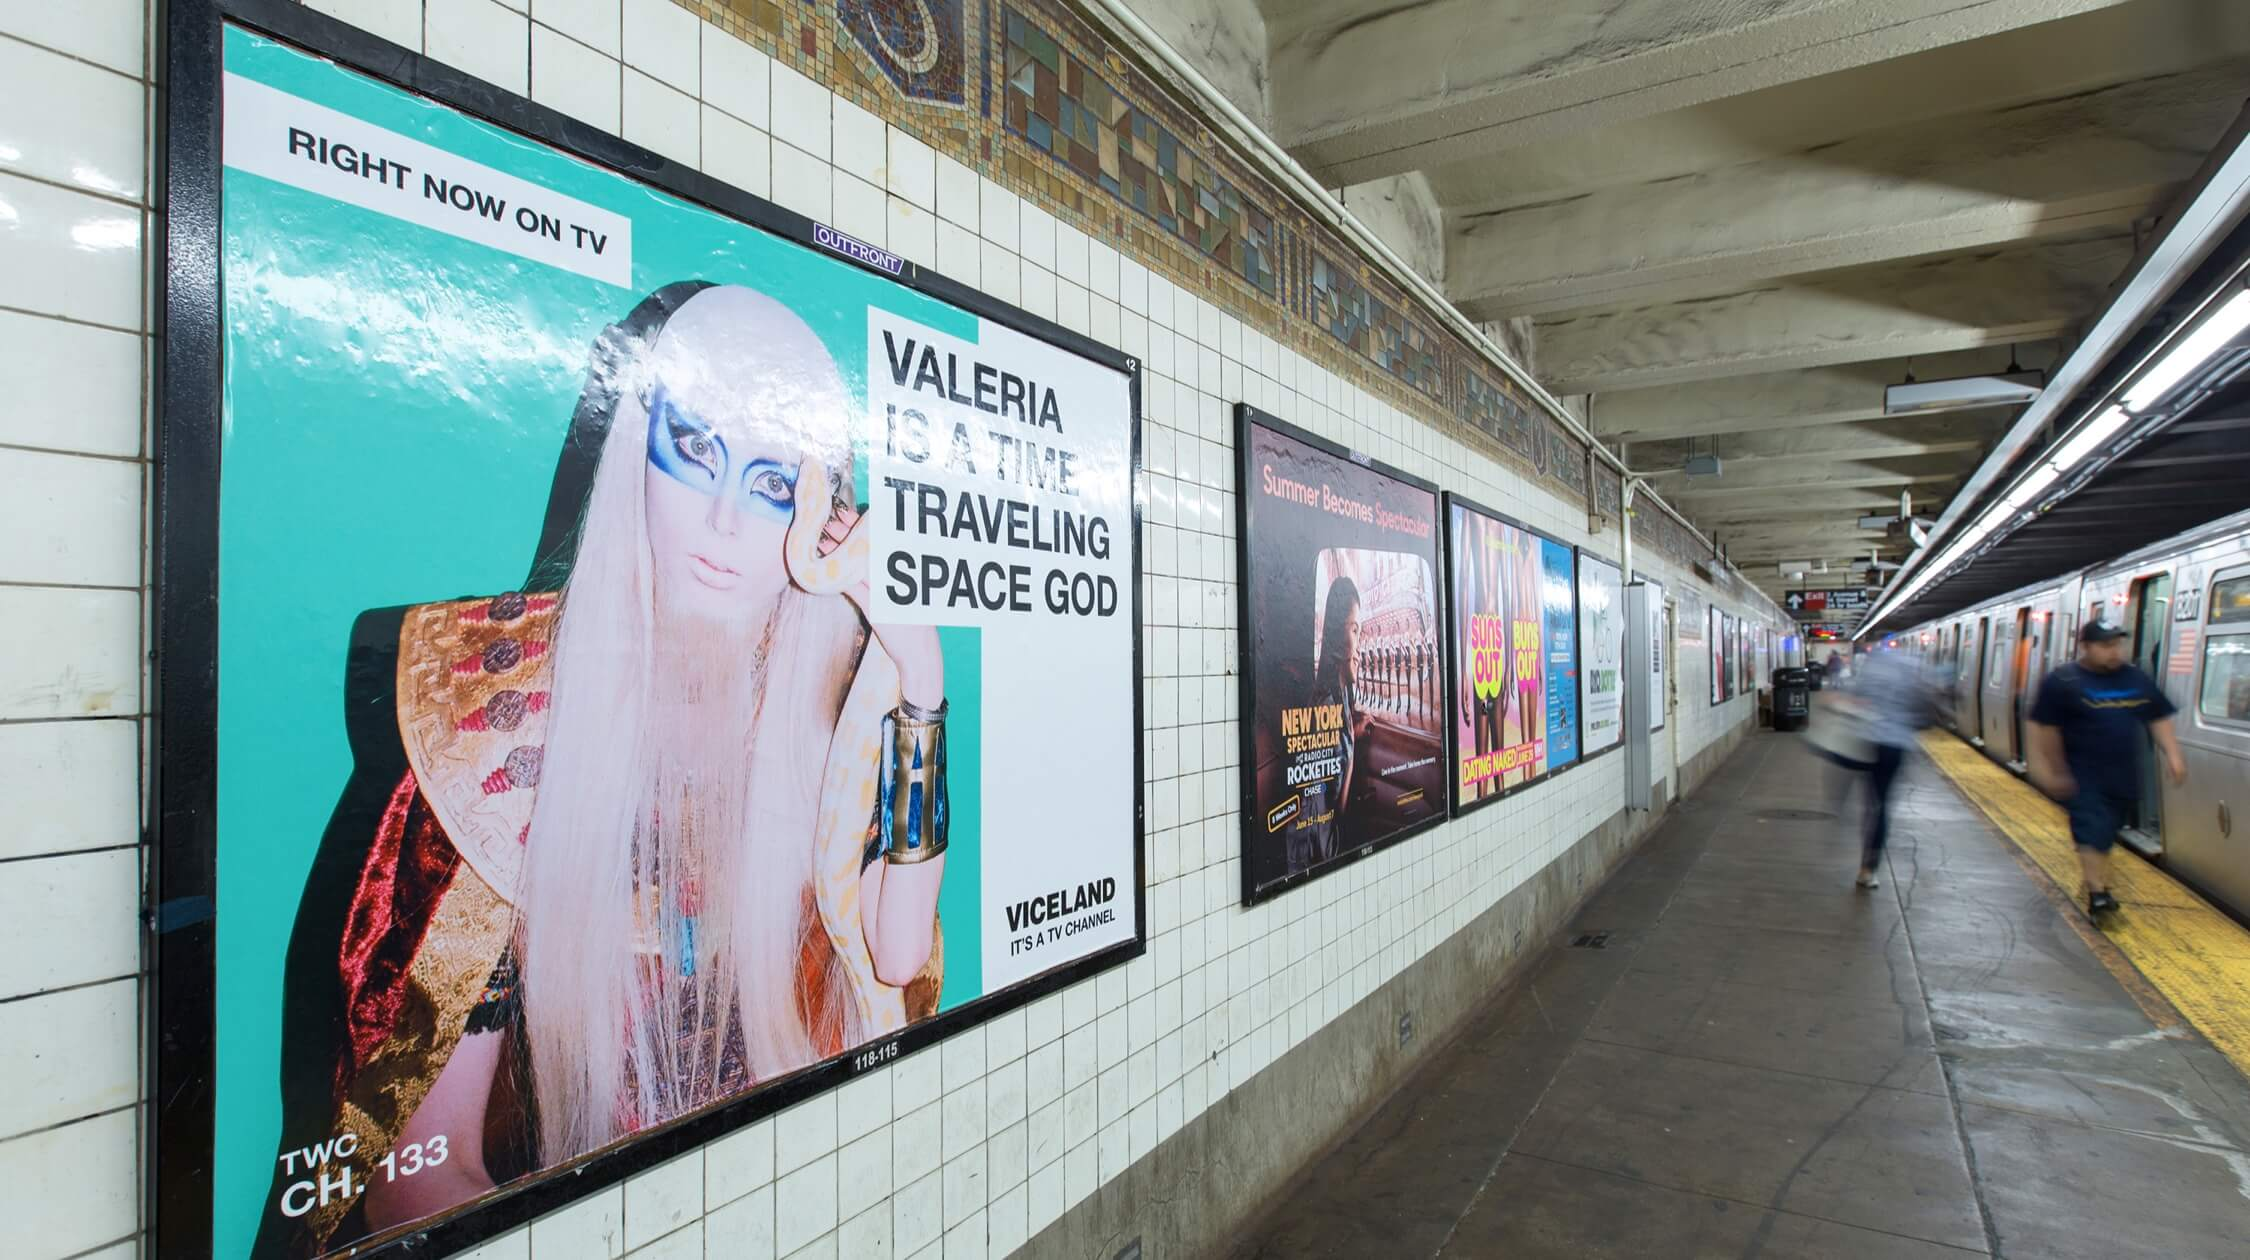 Viceland Marketing Campaign Right Now Subway